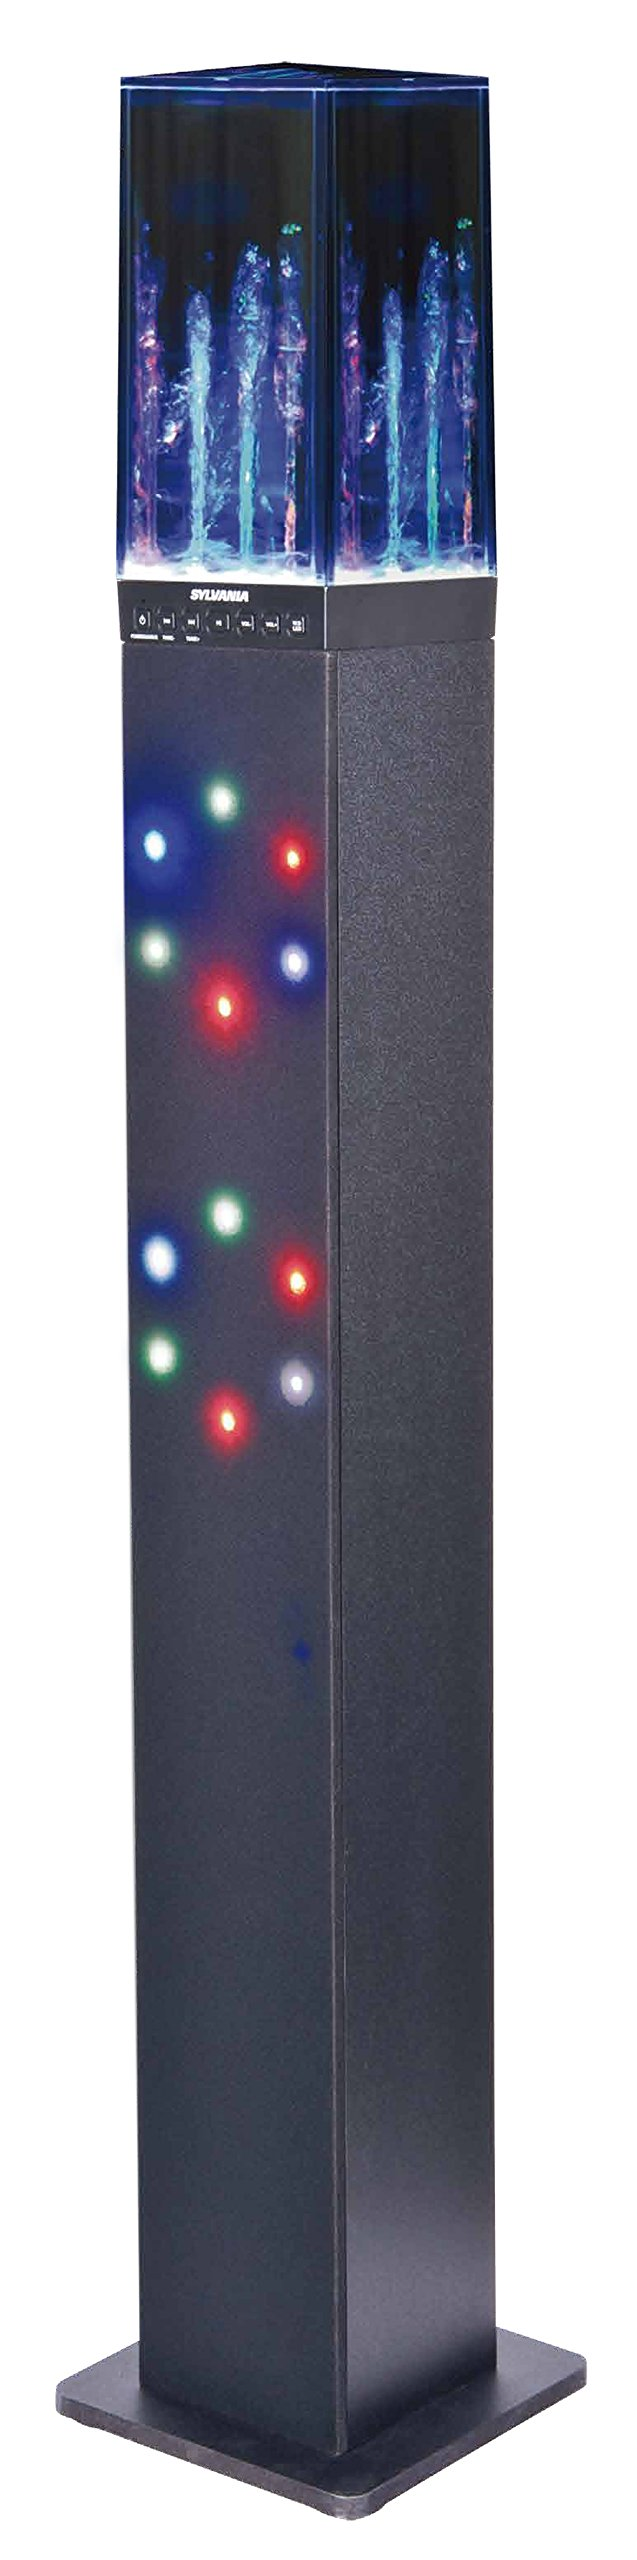 Sylvania Sp349 Light Amp Water Display Bluetooth Tower Speaker Tower Speakers Led Color Changing Lights Sylvania